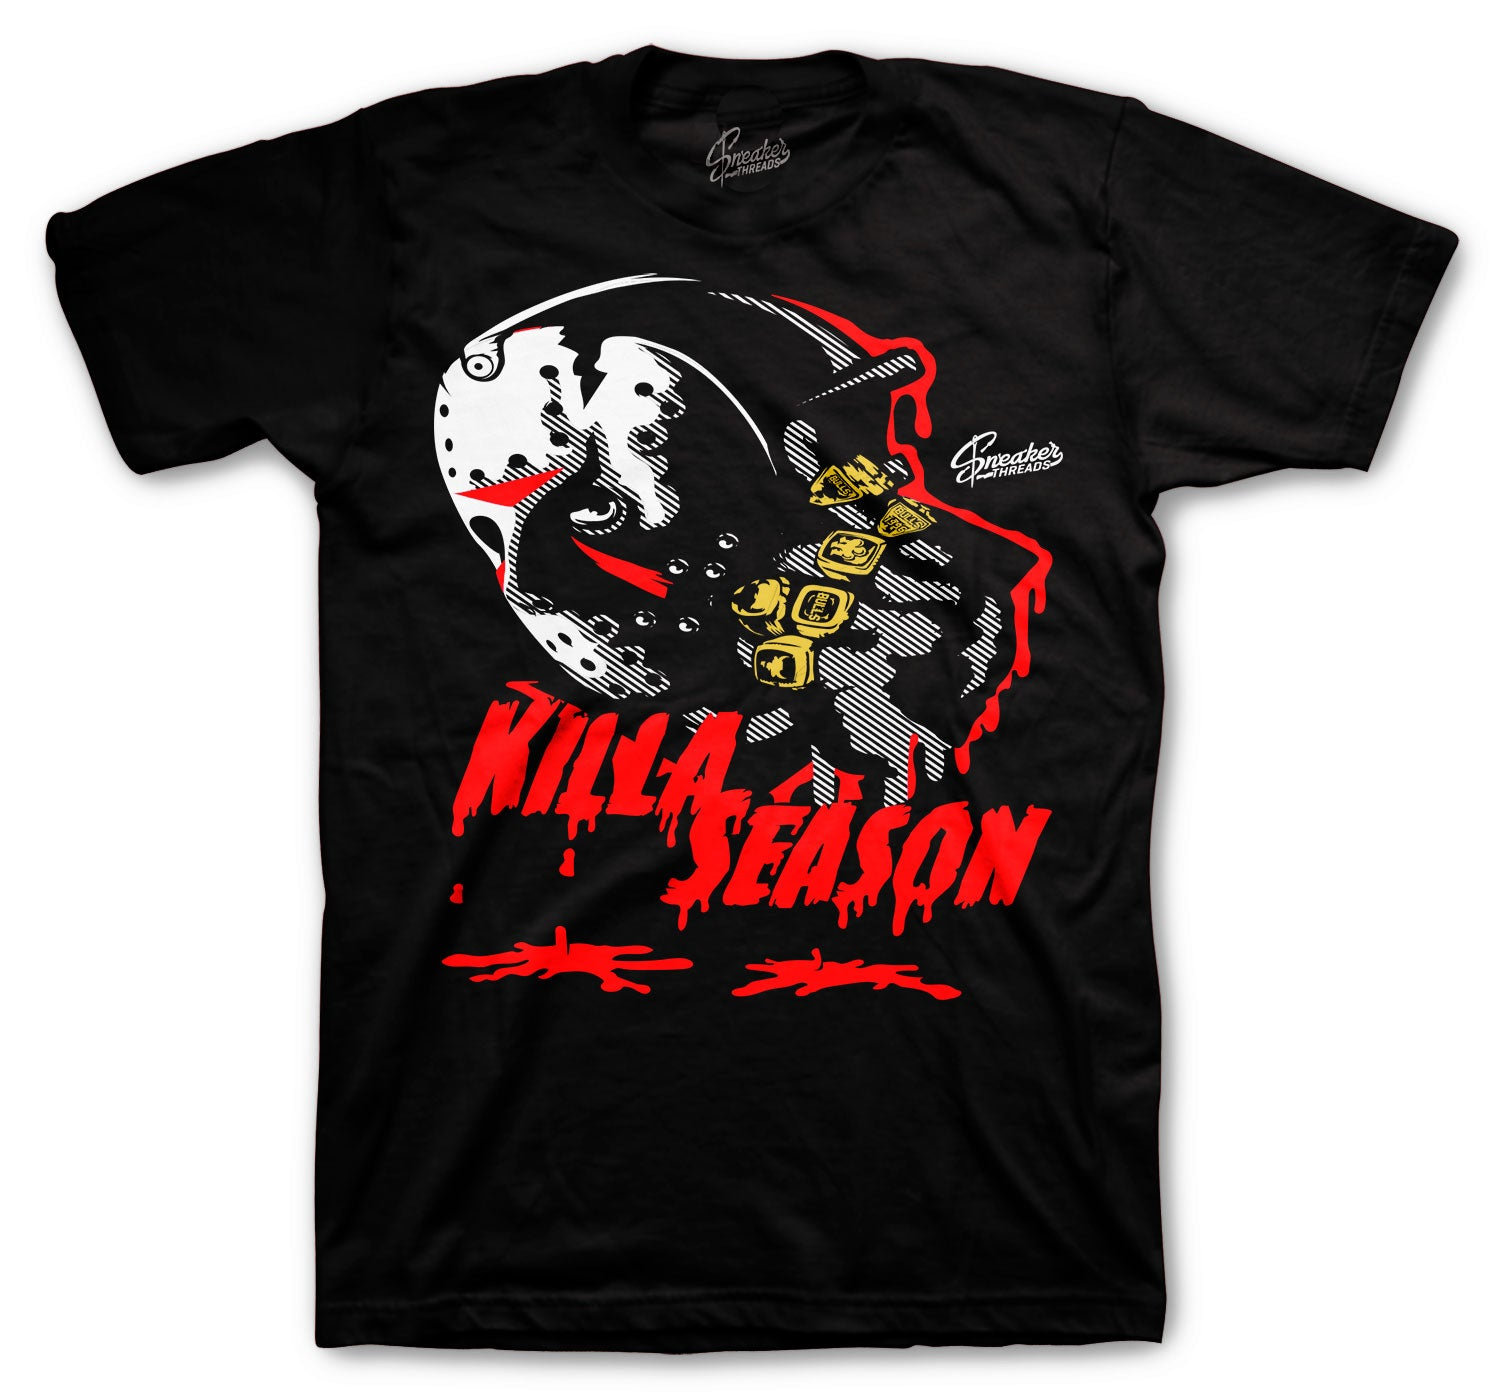 Jordan 12 Super Bowl Shirt - Killa Season - Black